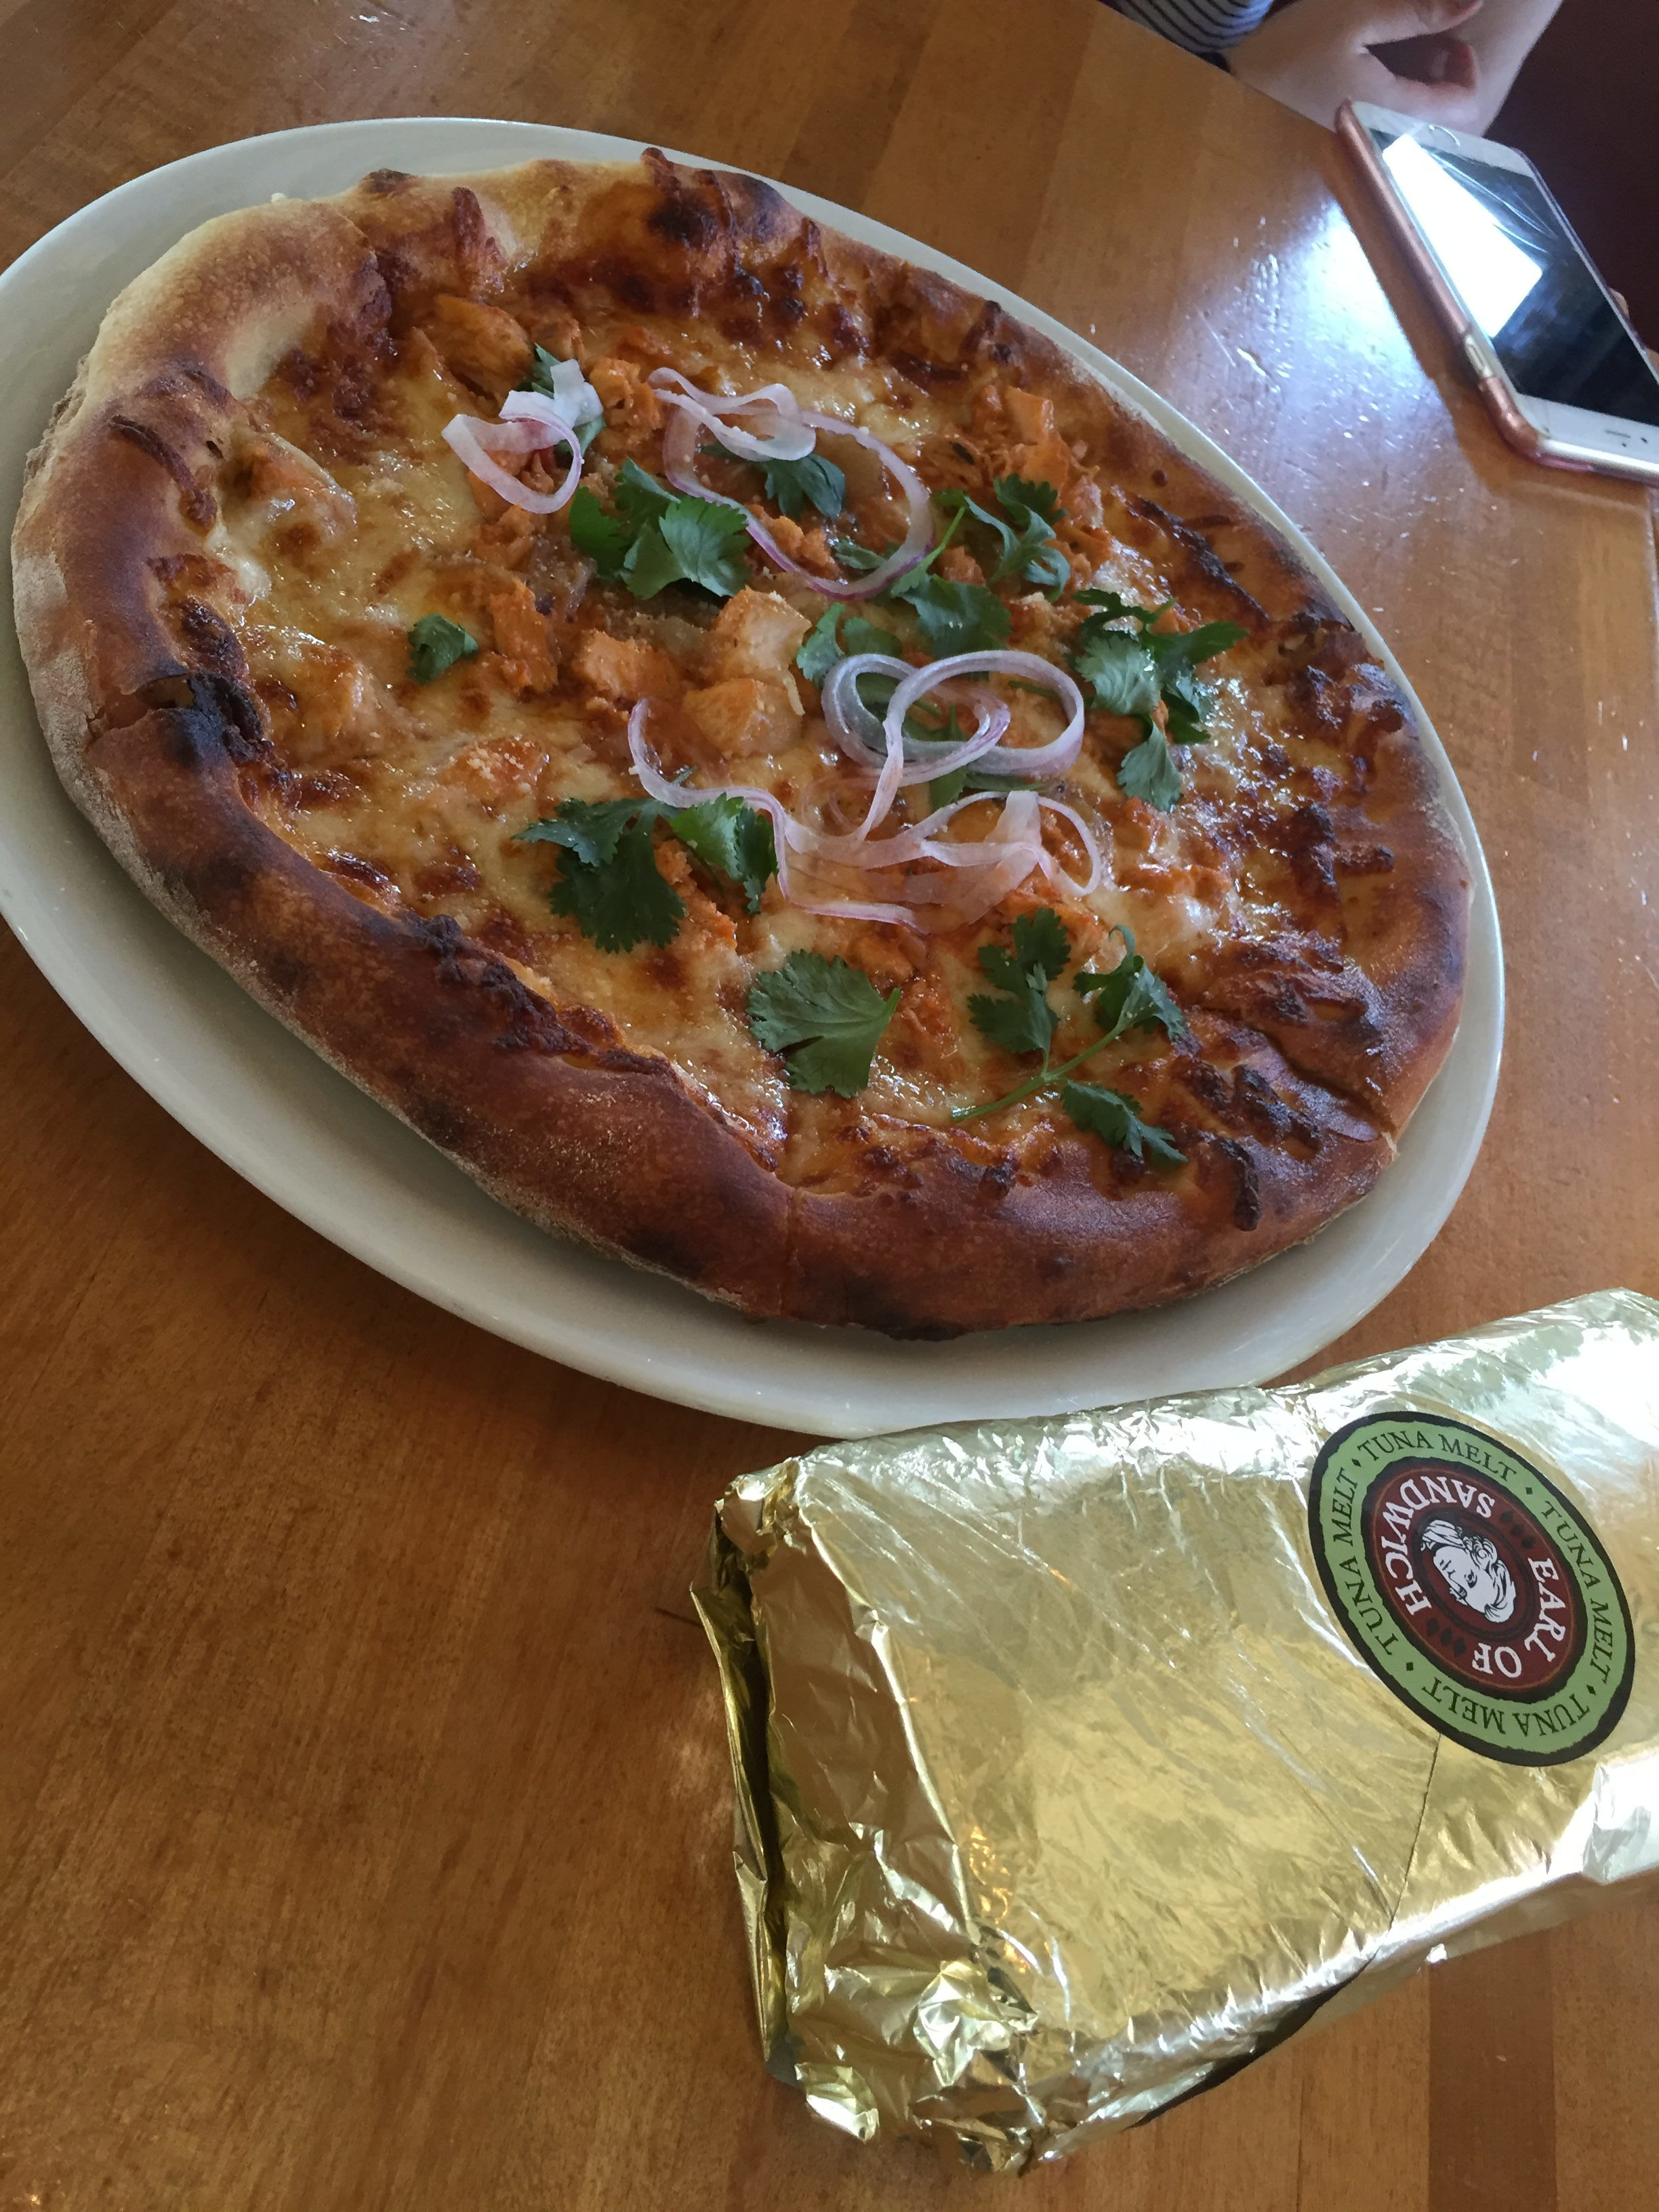 Some days, we mix and match. Earl of Sandwich Tuna Melt and Wolfgang Puck BBQ Chicken pizza.